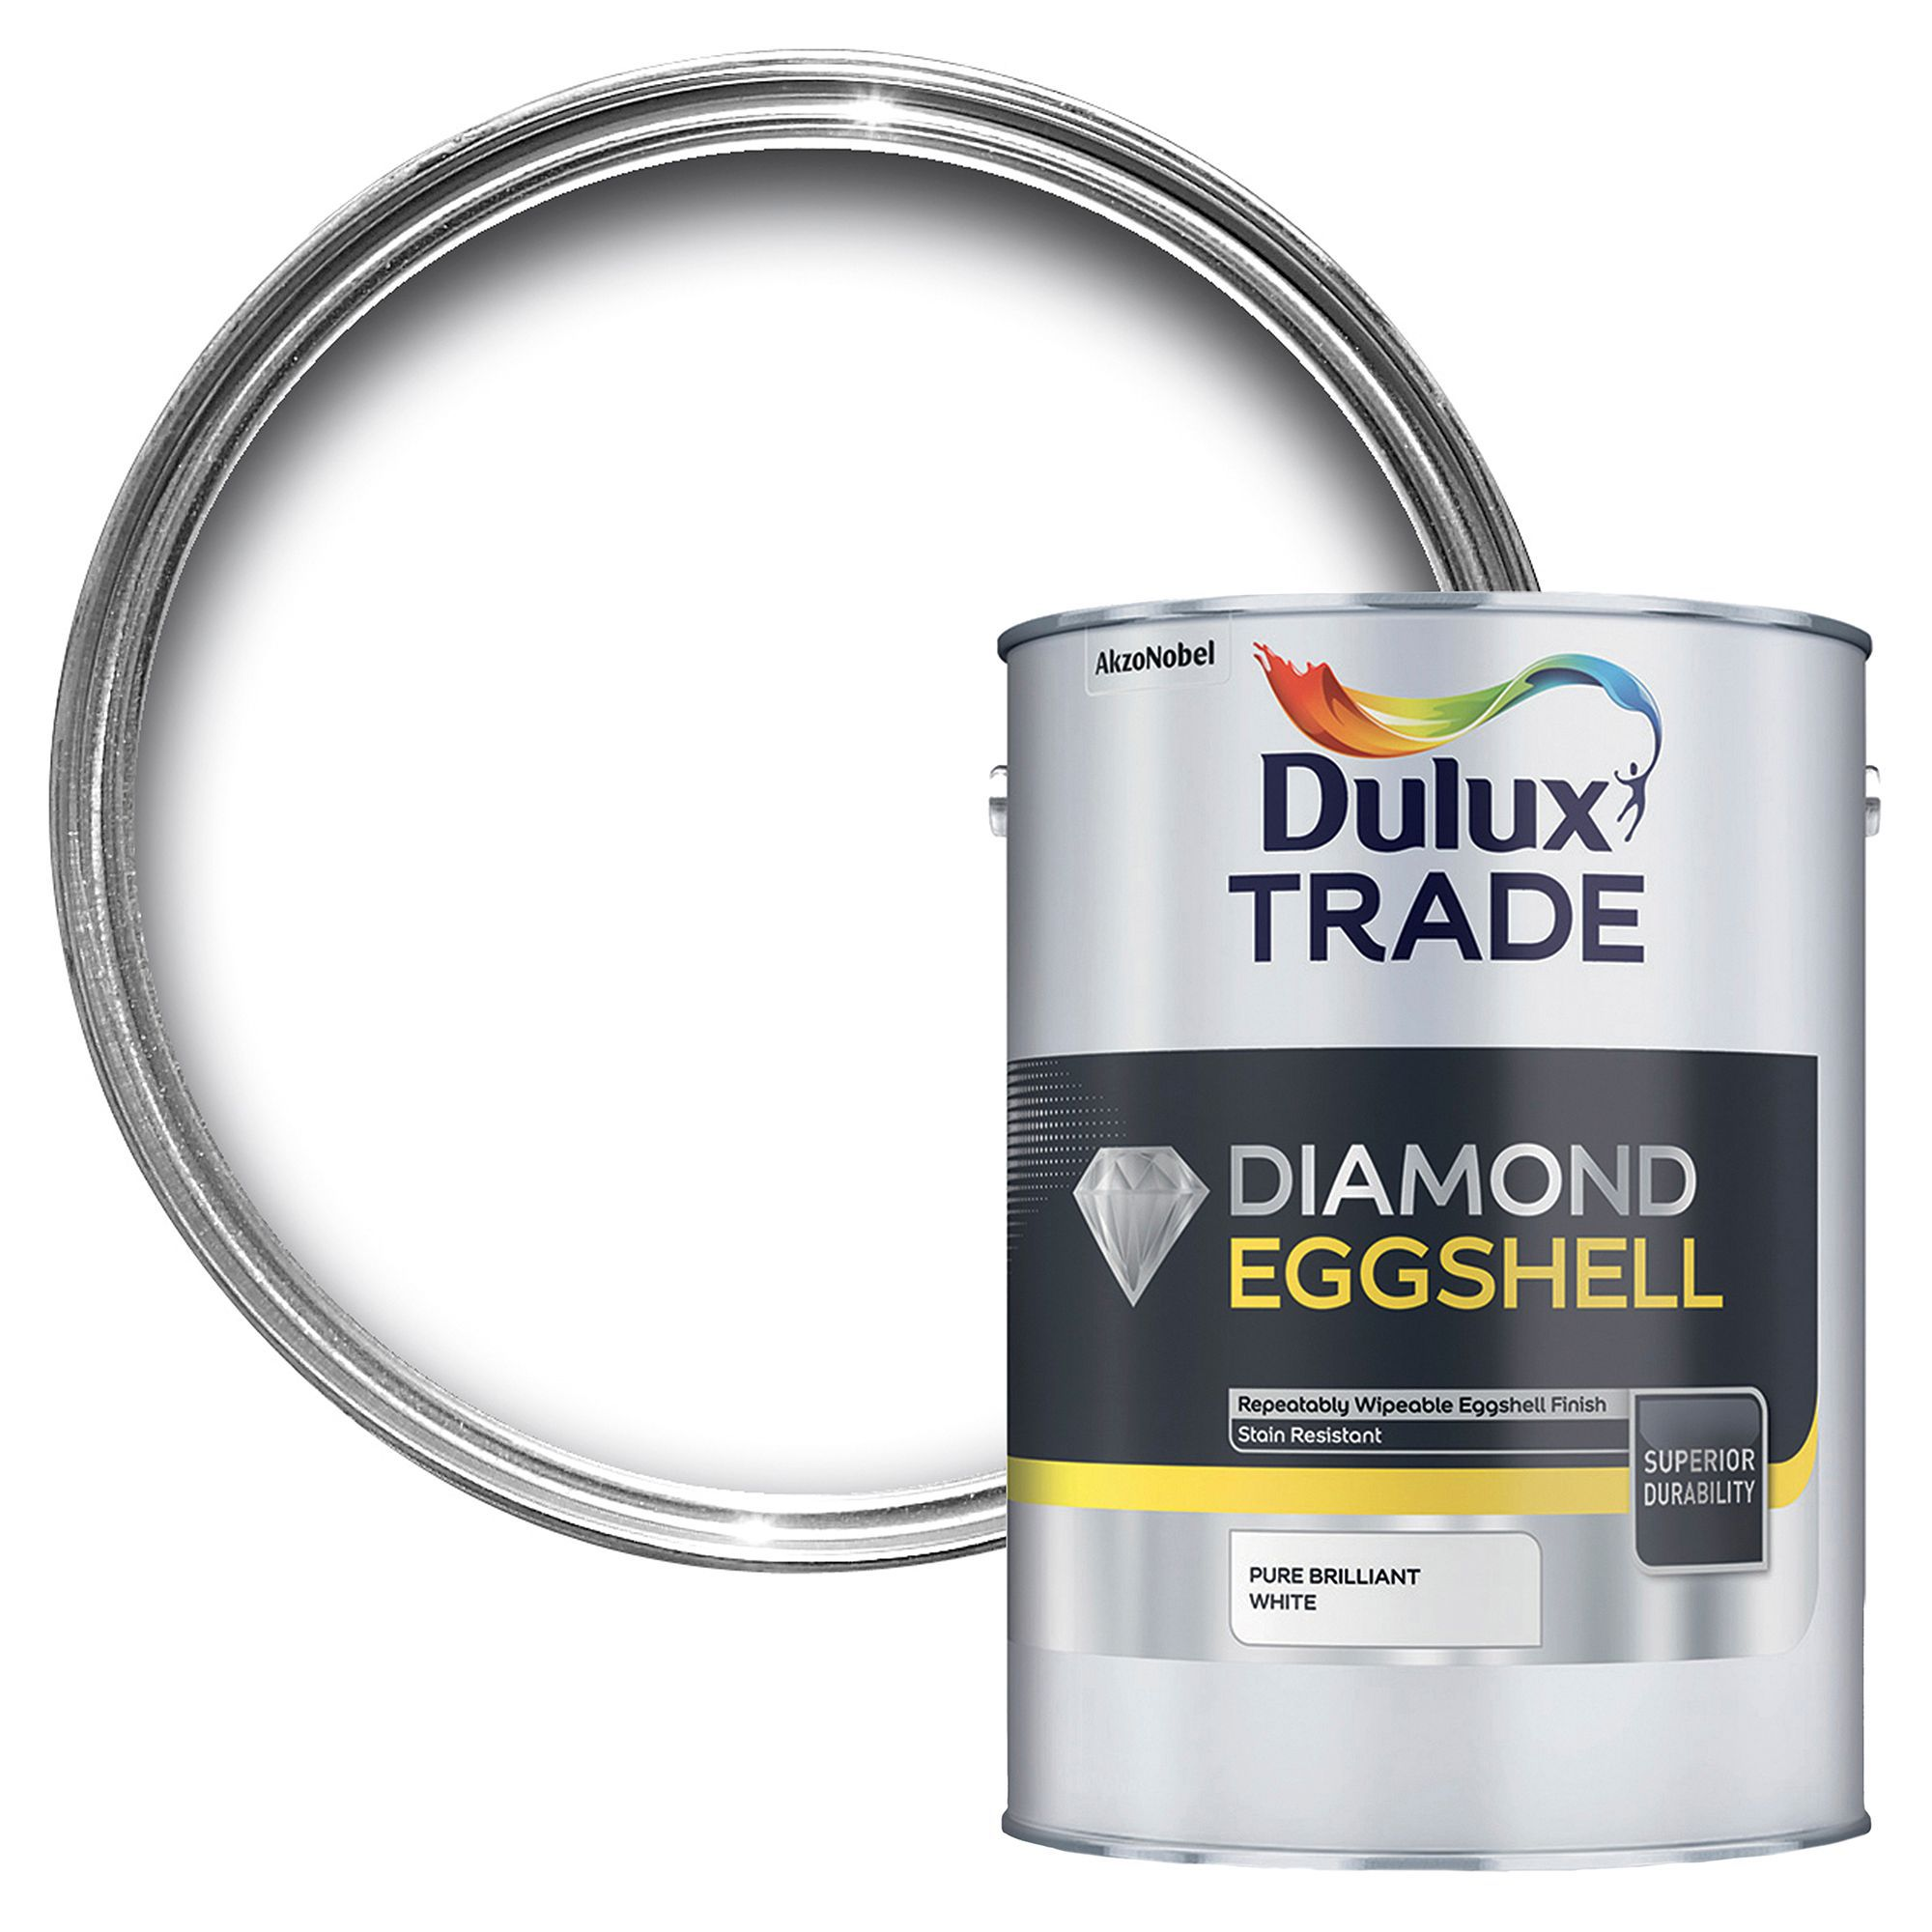 Dulux Trade Interior Brilliant White Eggshell Wood & Metal Paint 2.5l